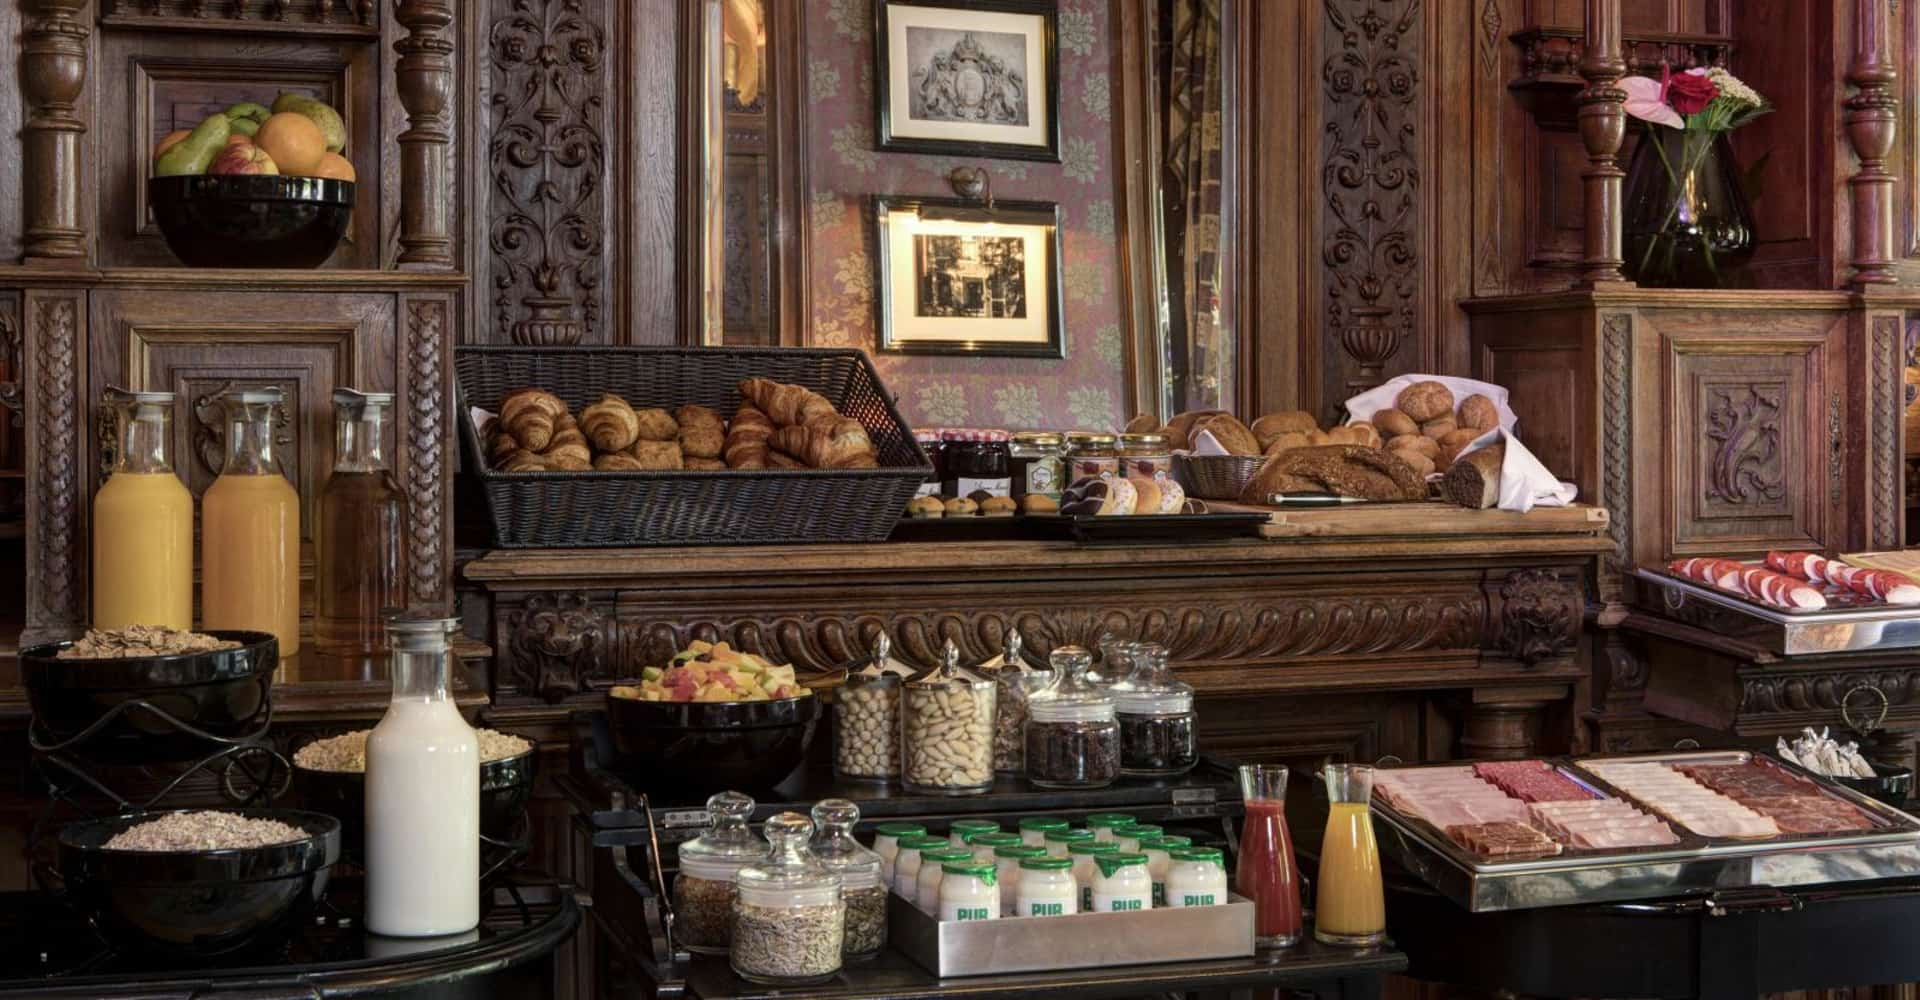 Bed & Breakfast - The Toren Amsterdam - By the Pavilions